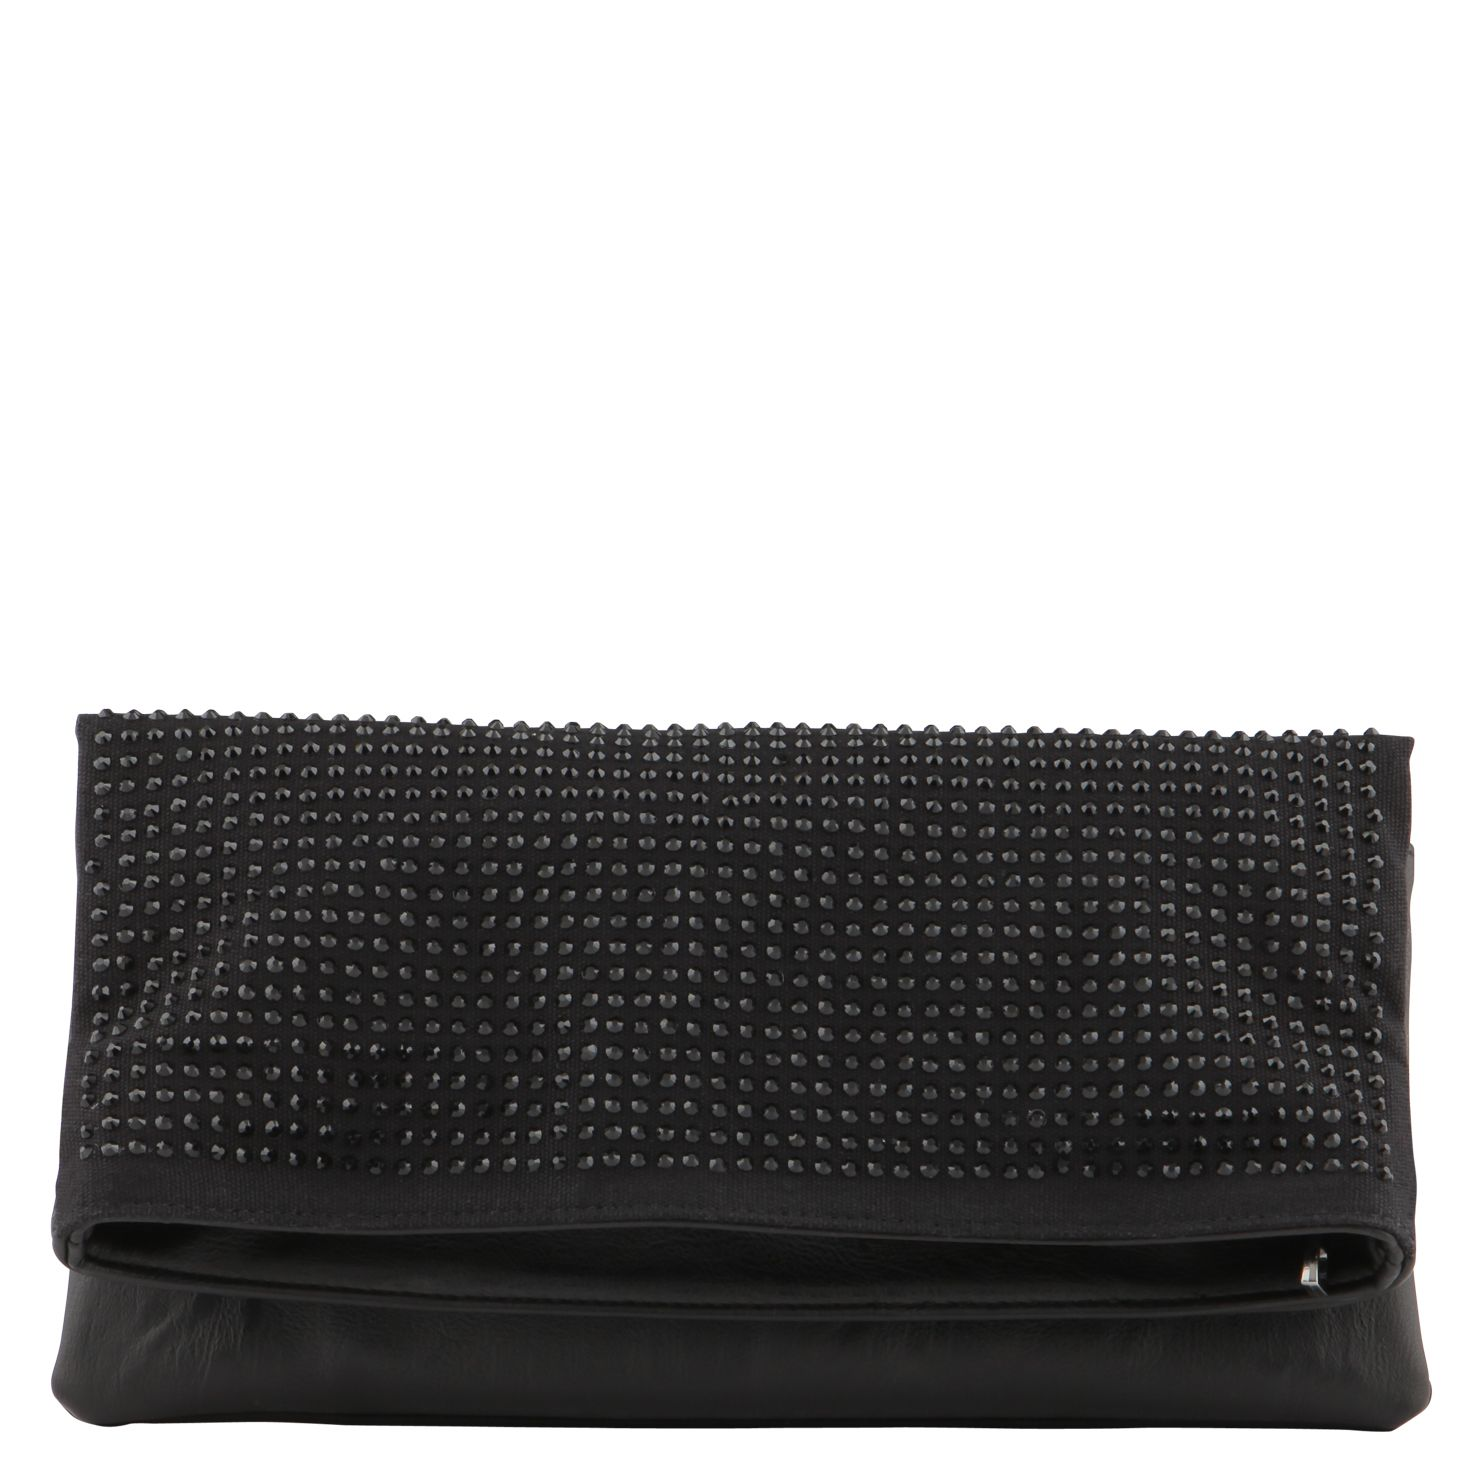 Gahl clutch bag